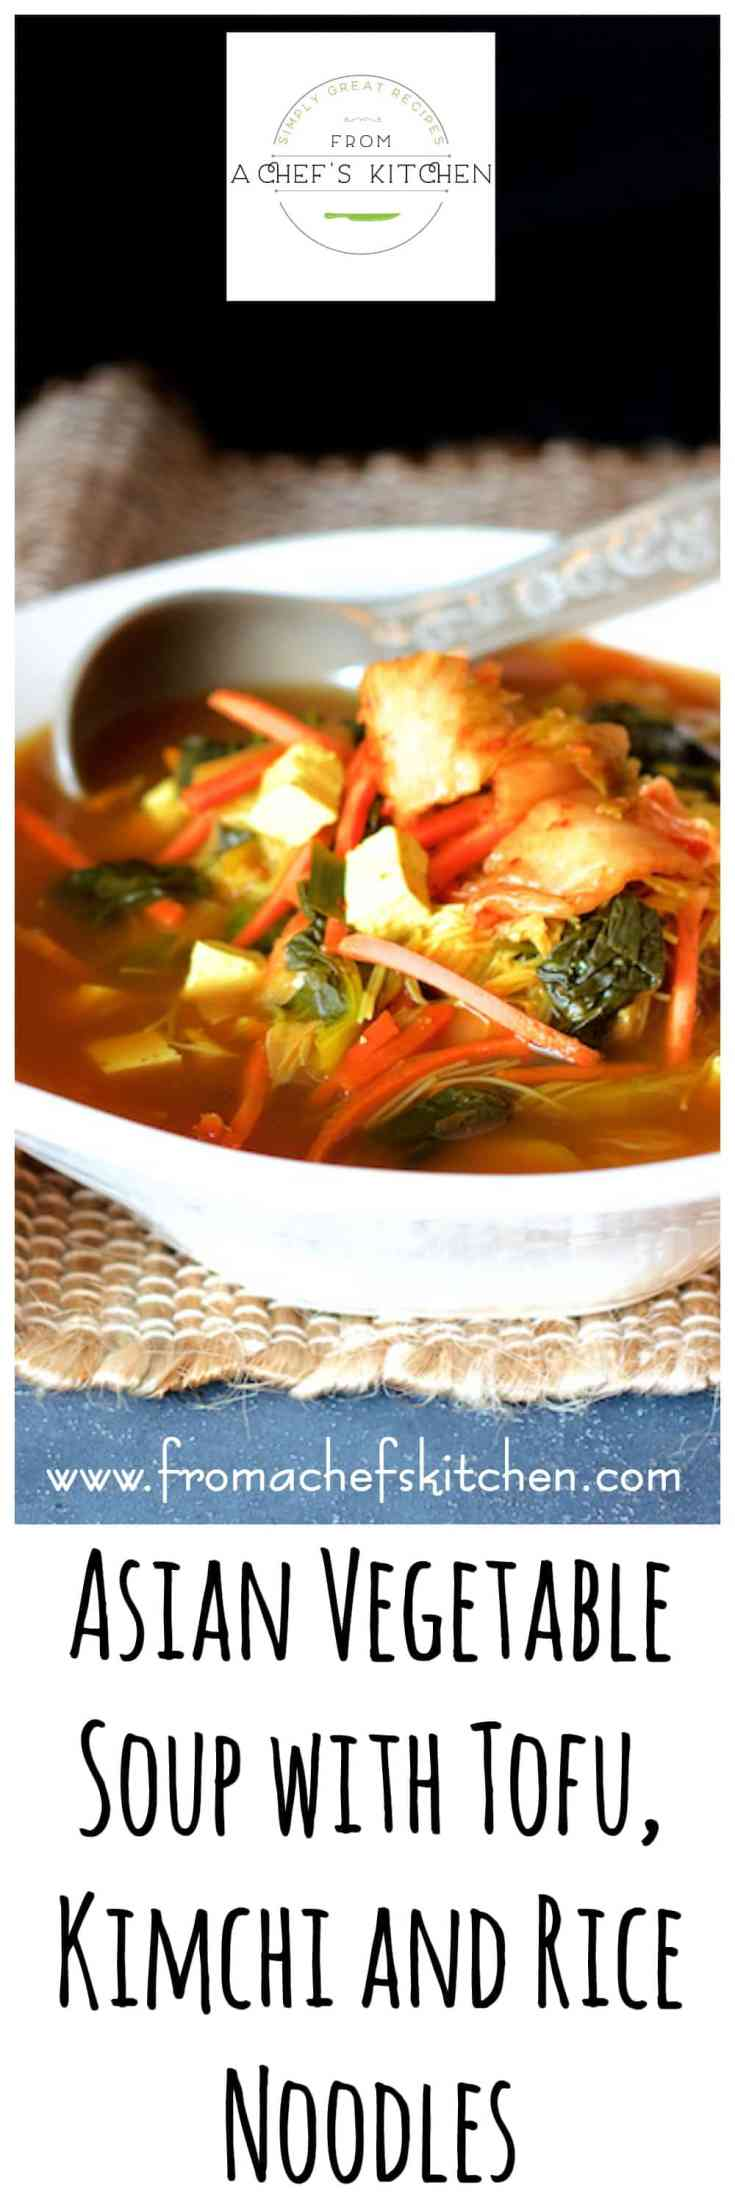 Asian Vegetable Soup with Tofu, Kimchi and Rice Noodles is spicy, packed with flavor and guaranteed to warm you from the inside out!  This vegan soup hits all the notes! #asian #asianrecipes #asianvegetablesoup #tofu #kimchi #ricenoodles #vegan